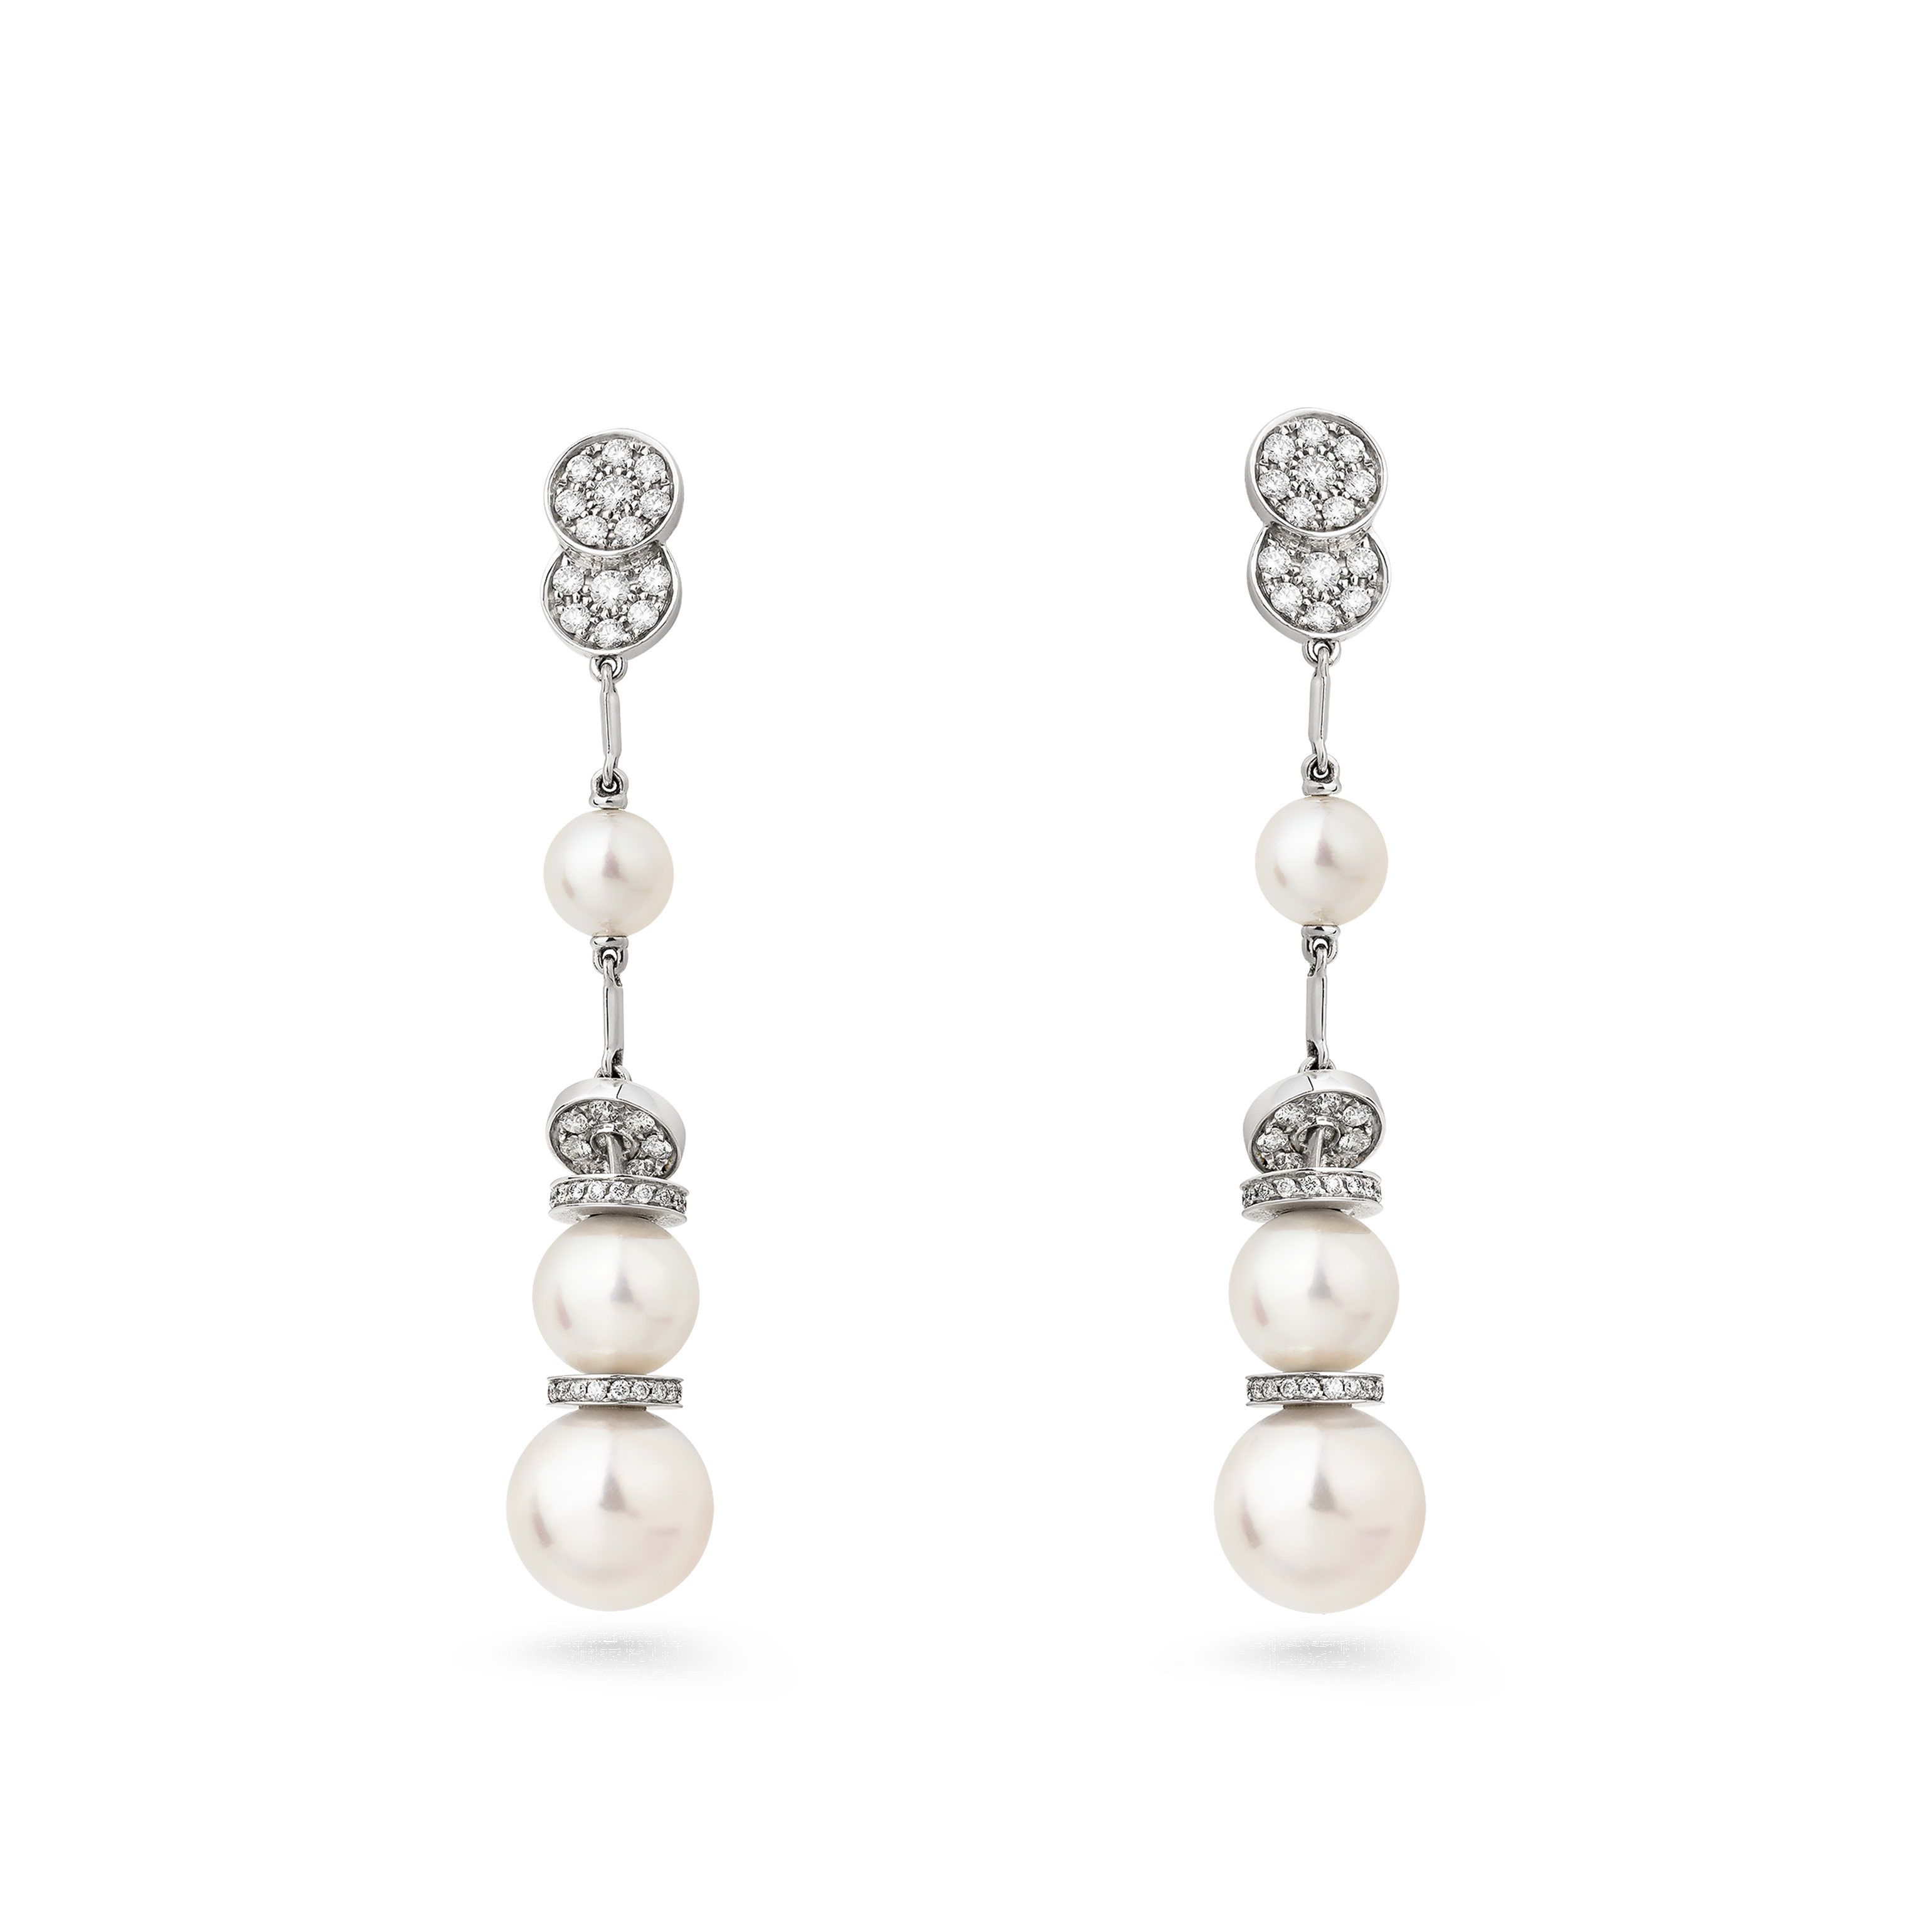 Perles Couture earrings - 18K white gold, diamonds, cultured pearls - CHANEL - Default view - see standard sized version